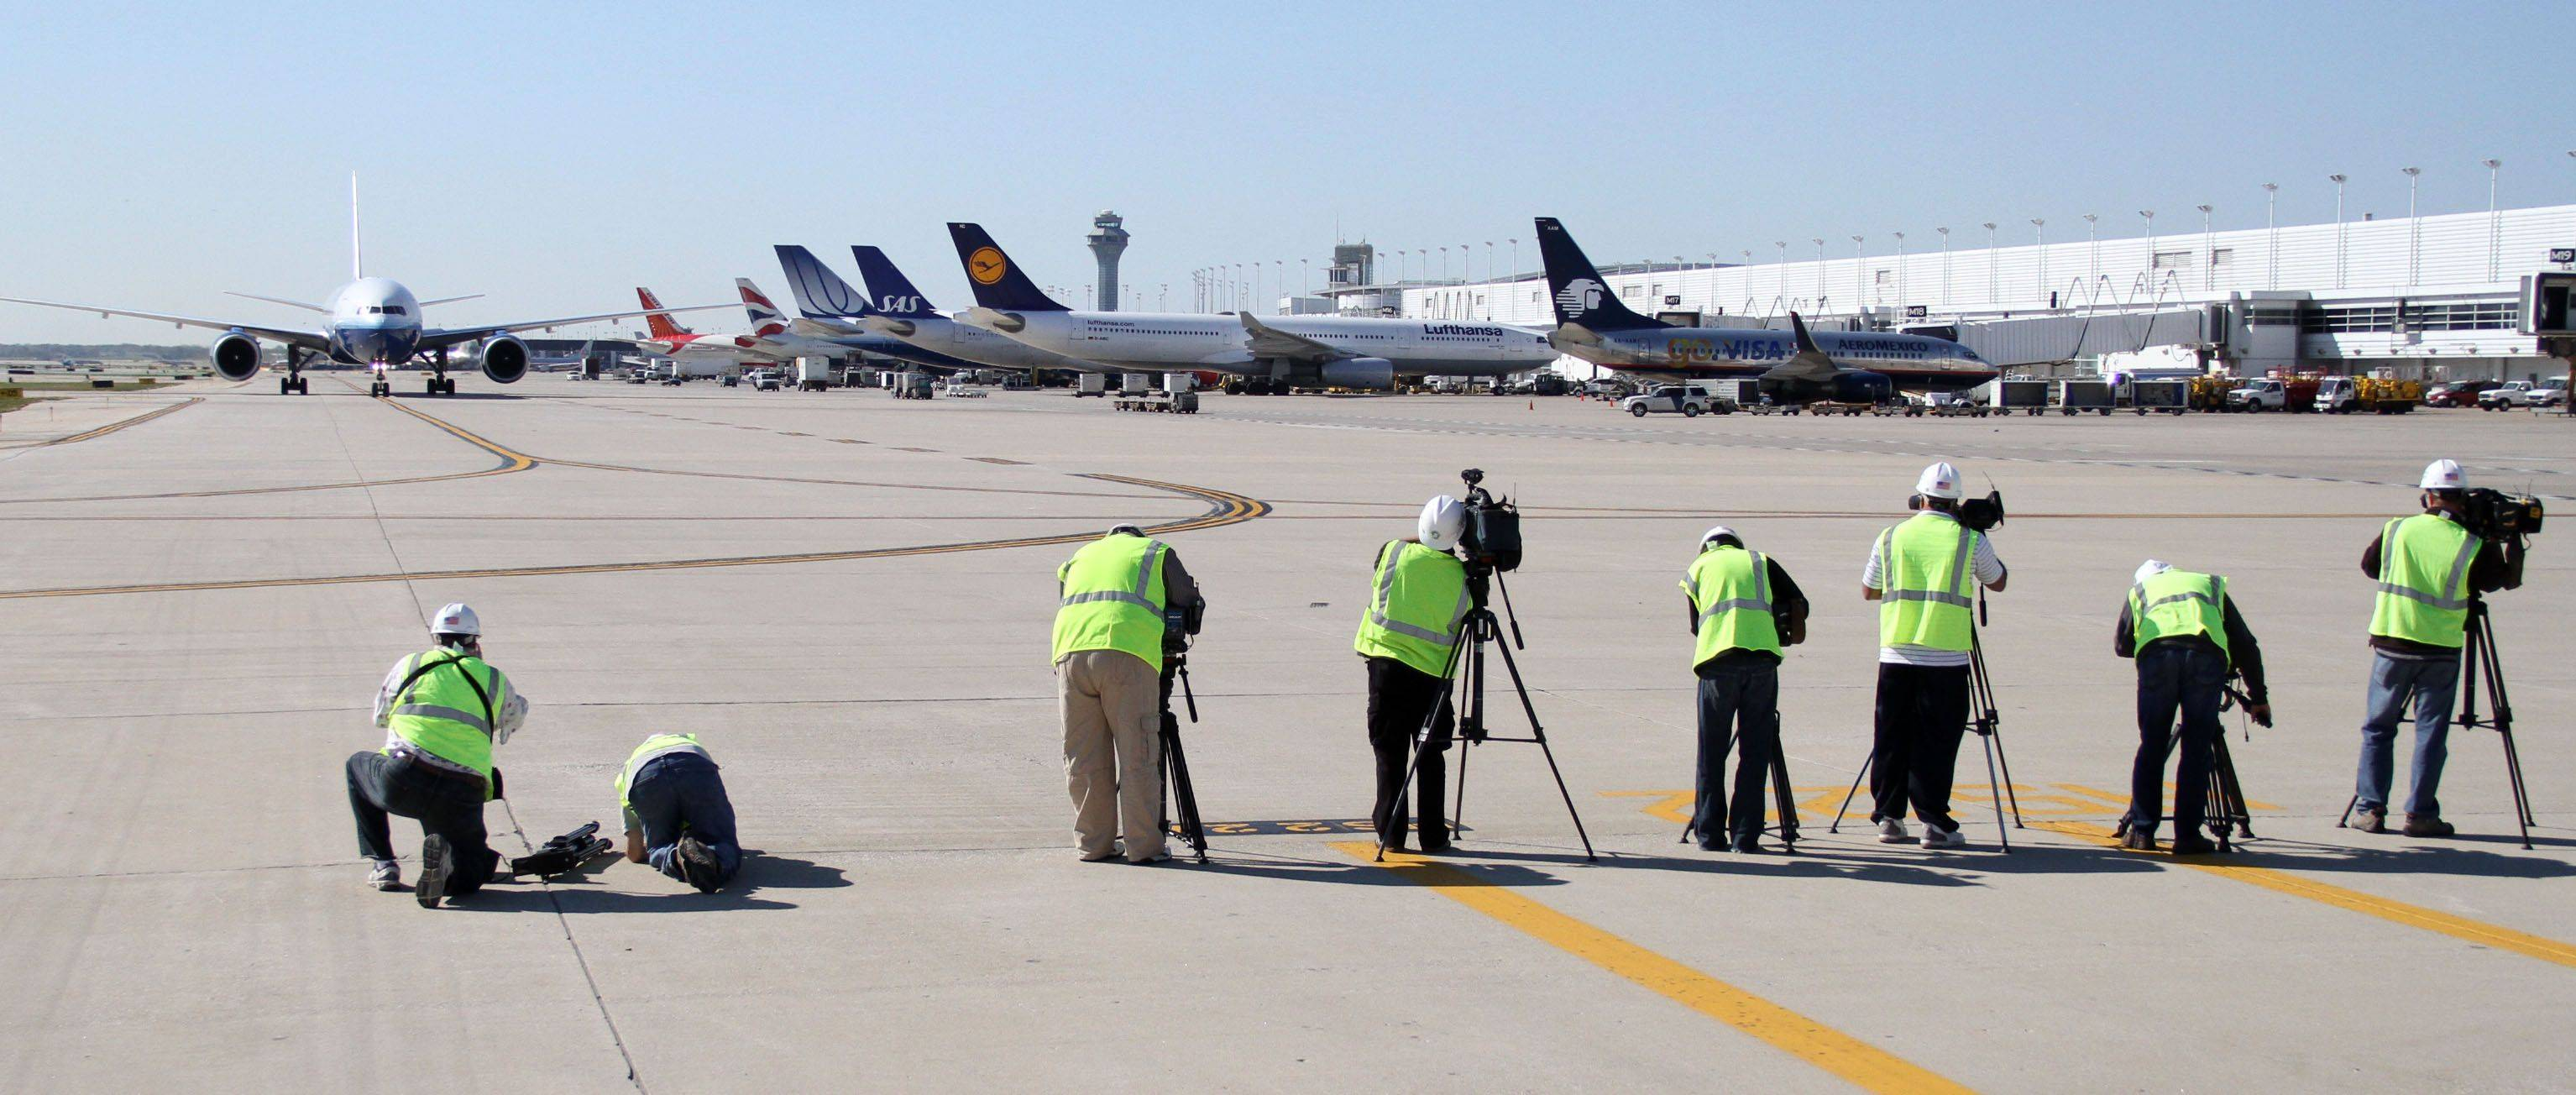 Chicago area TV station video photographers work at International Terminal 5 during a moderation project media tour at O'Hare International Airport Tuesday, October 5. The photographers were required to wear vests, hard hats and safety glasses while updating file video of the 10 Center East construction.